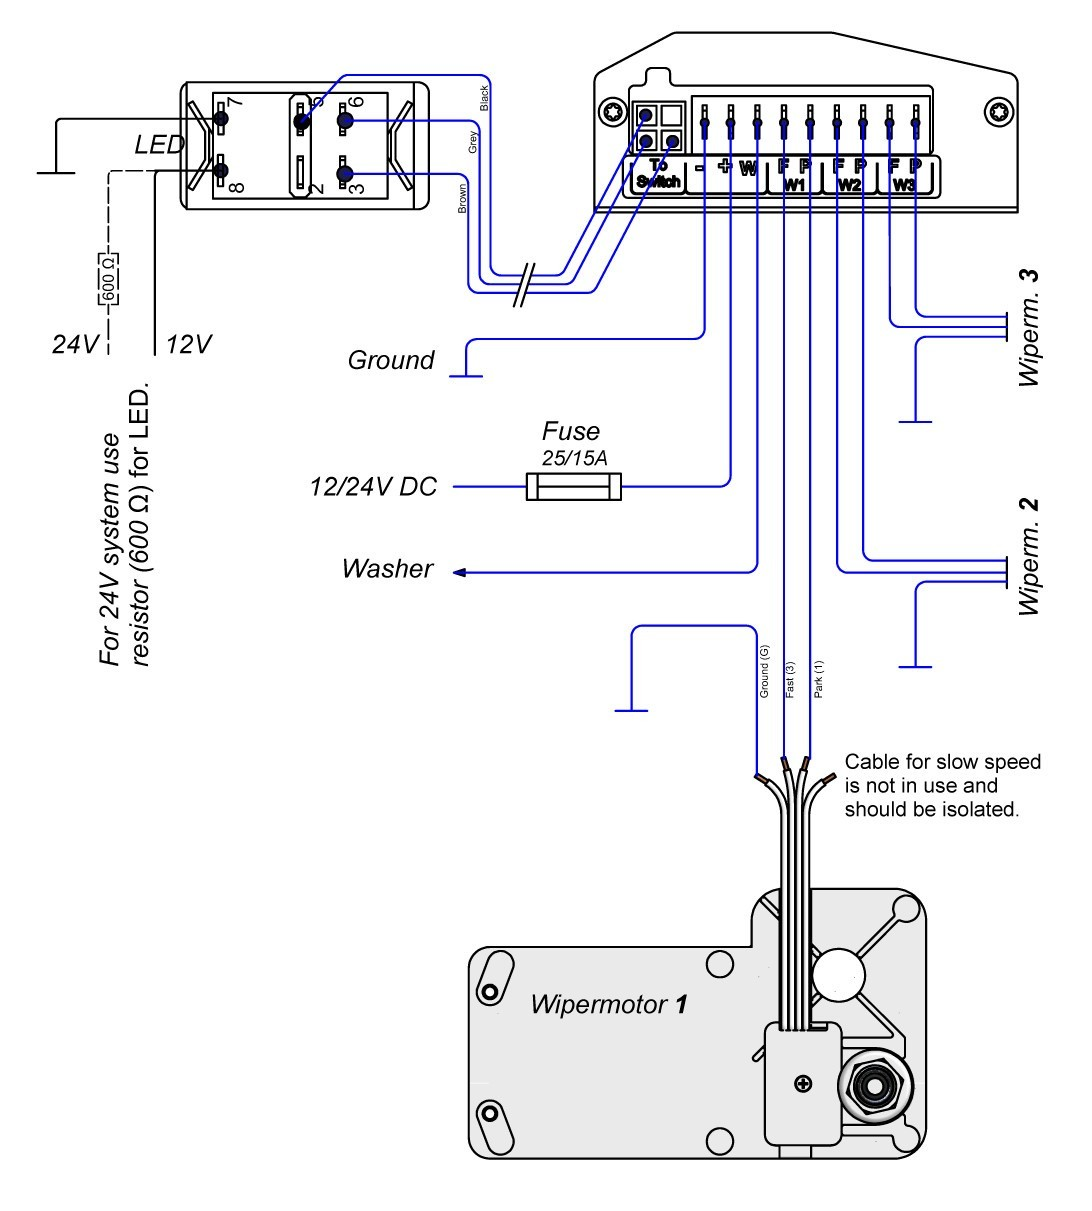 66 Chevelle Wiper Motor Wiring Diagram - Wiring Diagram ...